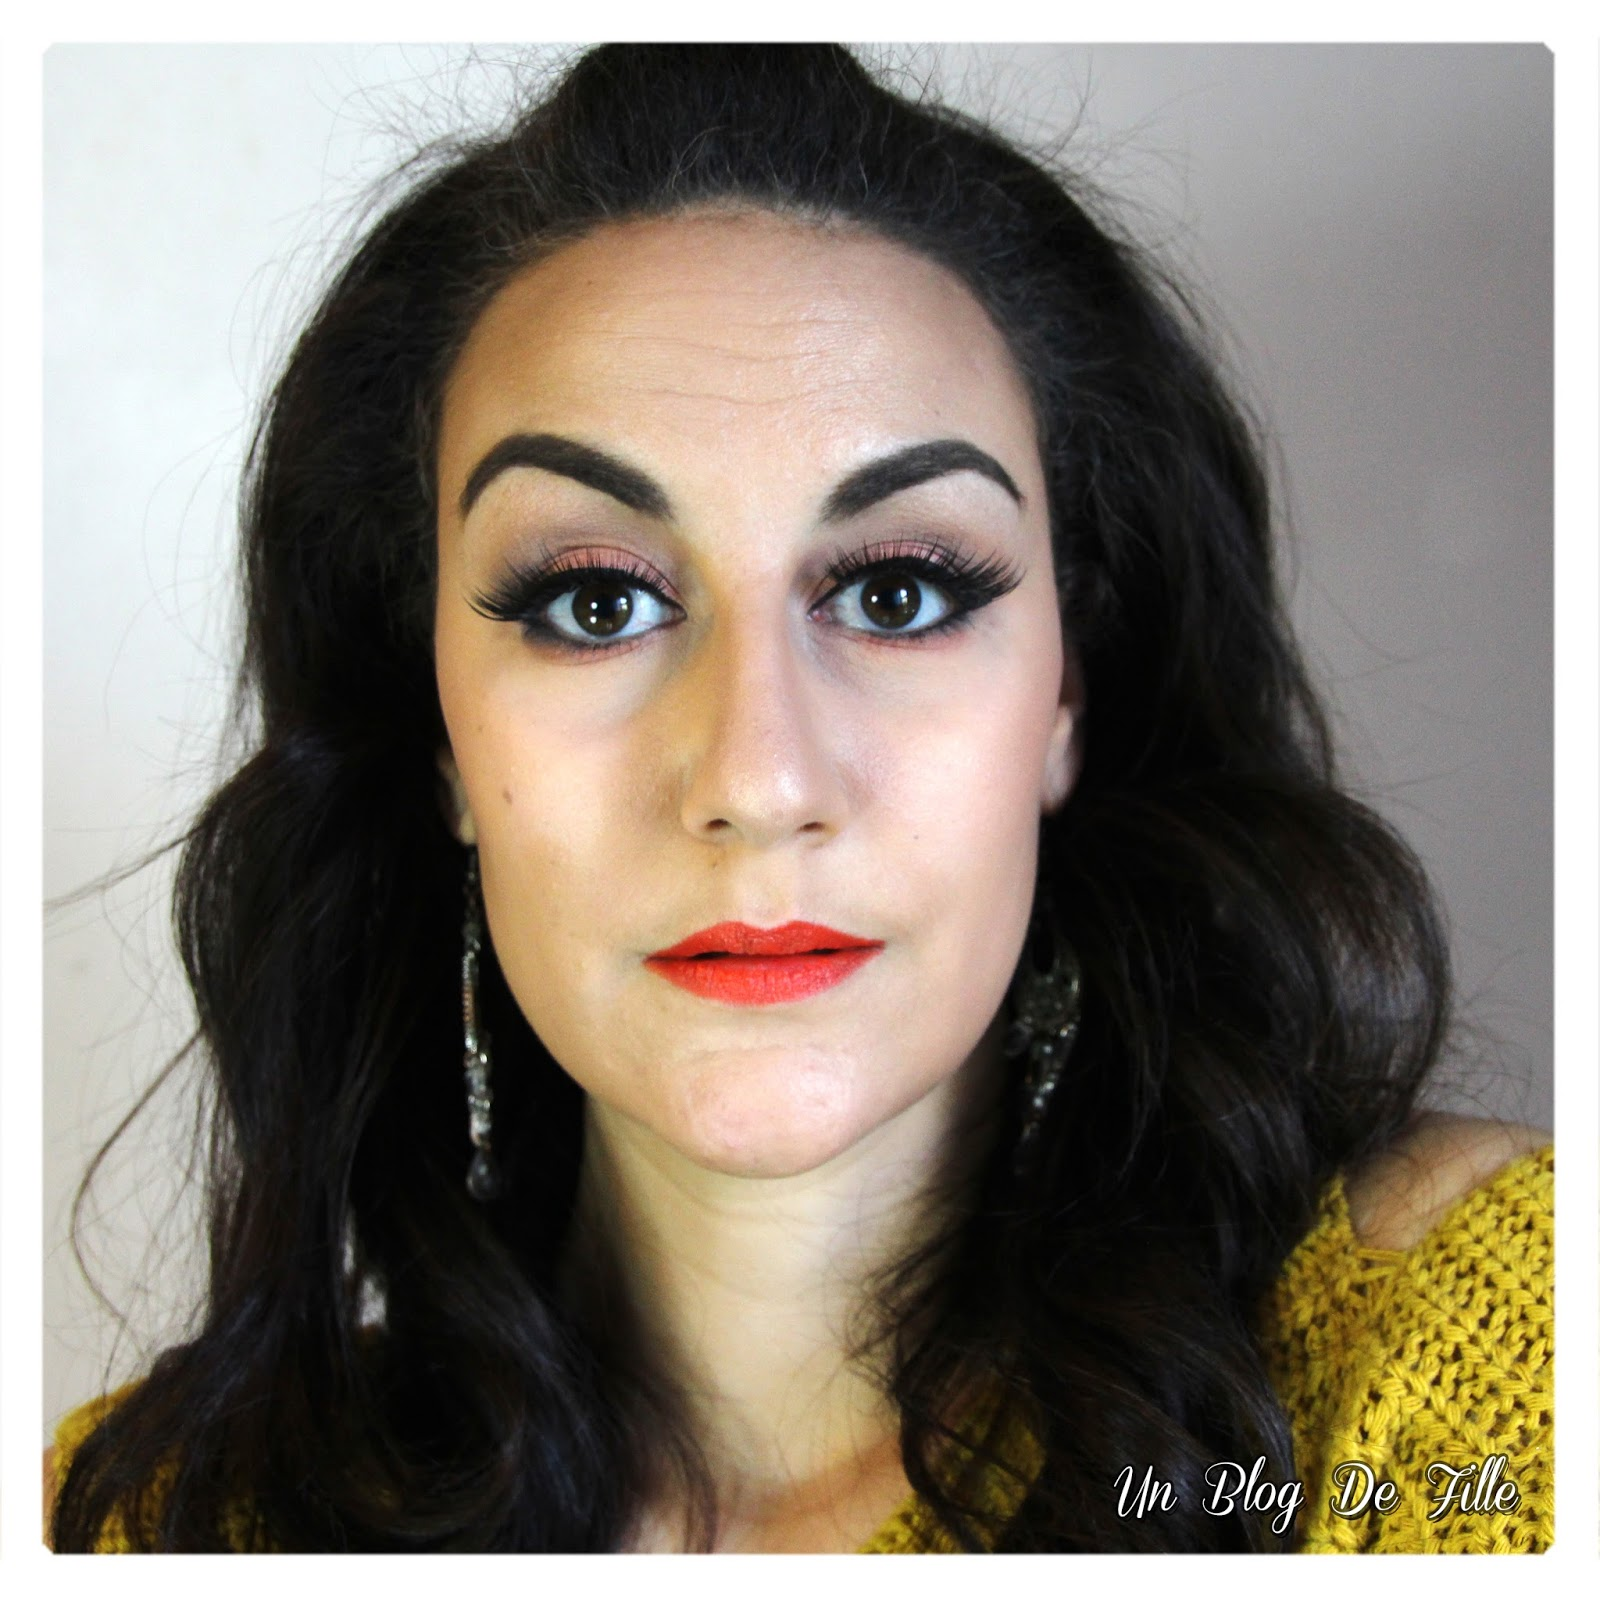 https://unblogdefille.blogspot.fr/2018/04/maquillage-orange-et-noir-msc.html